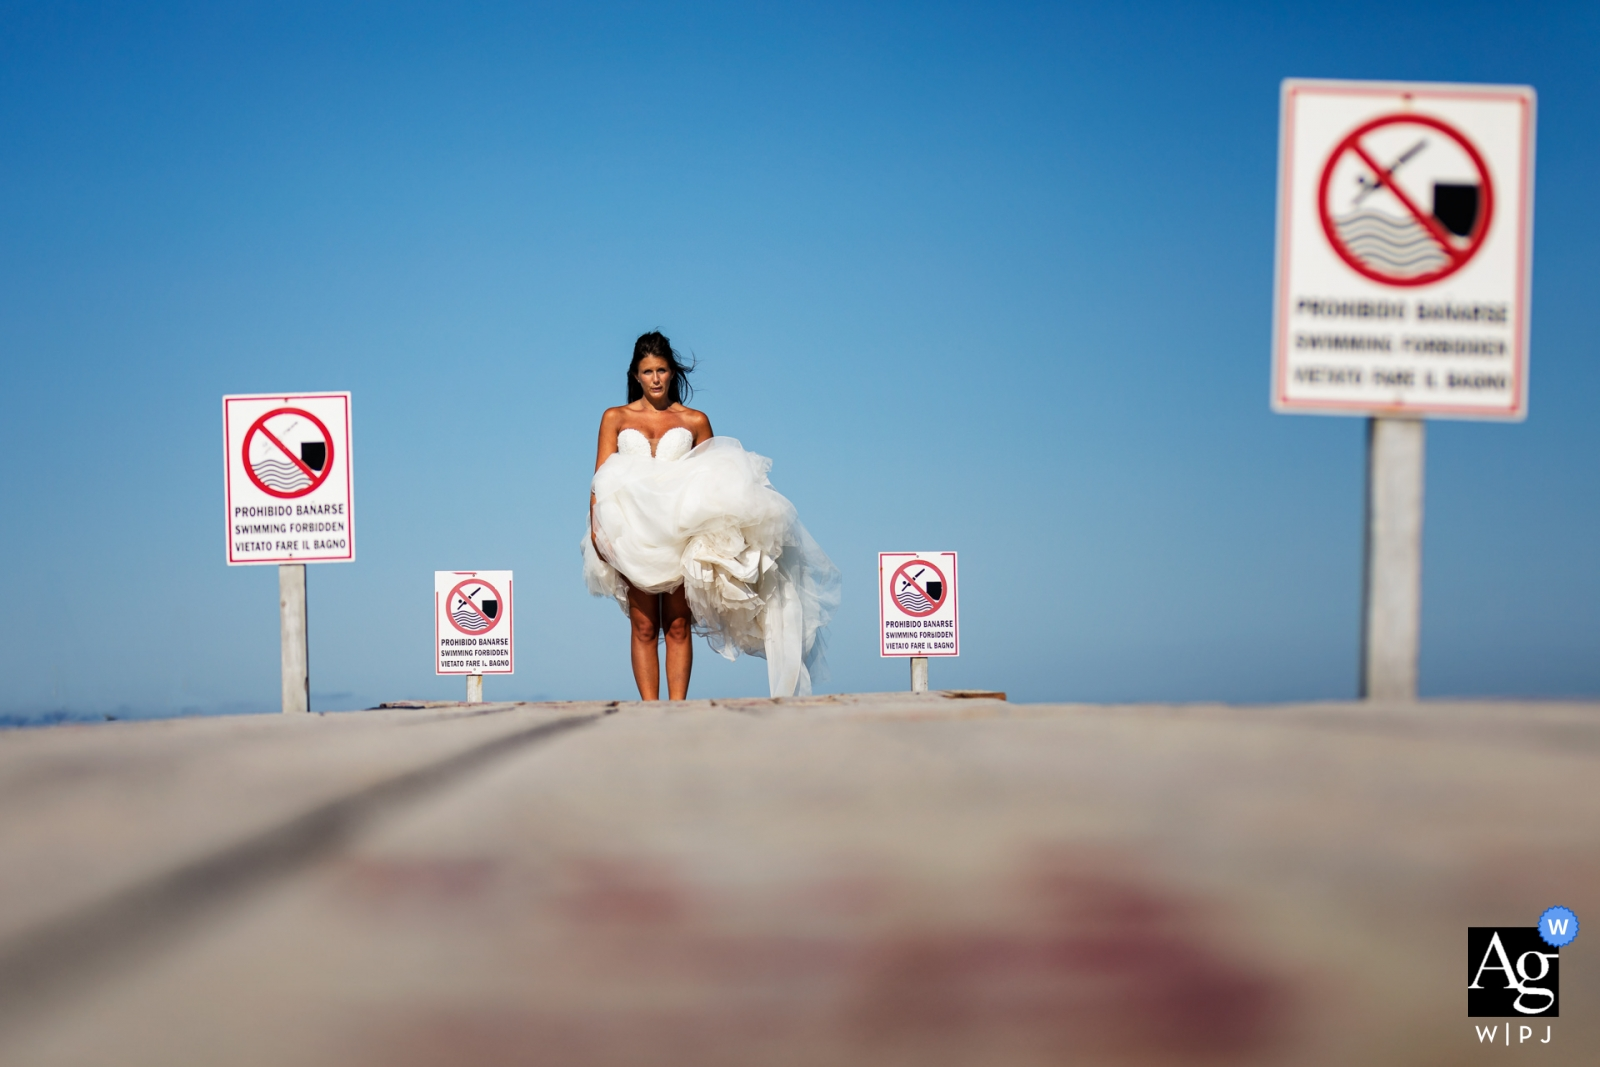 Formentera Island bride portrait at the beach in the sun with blue skies